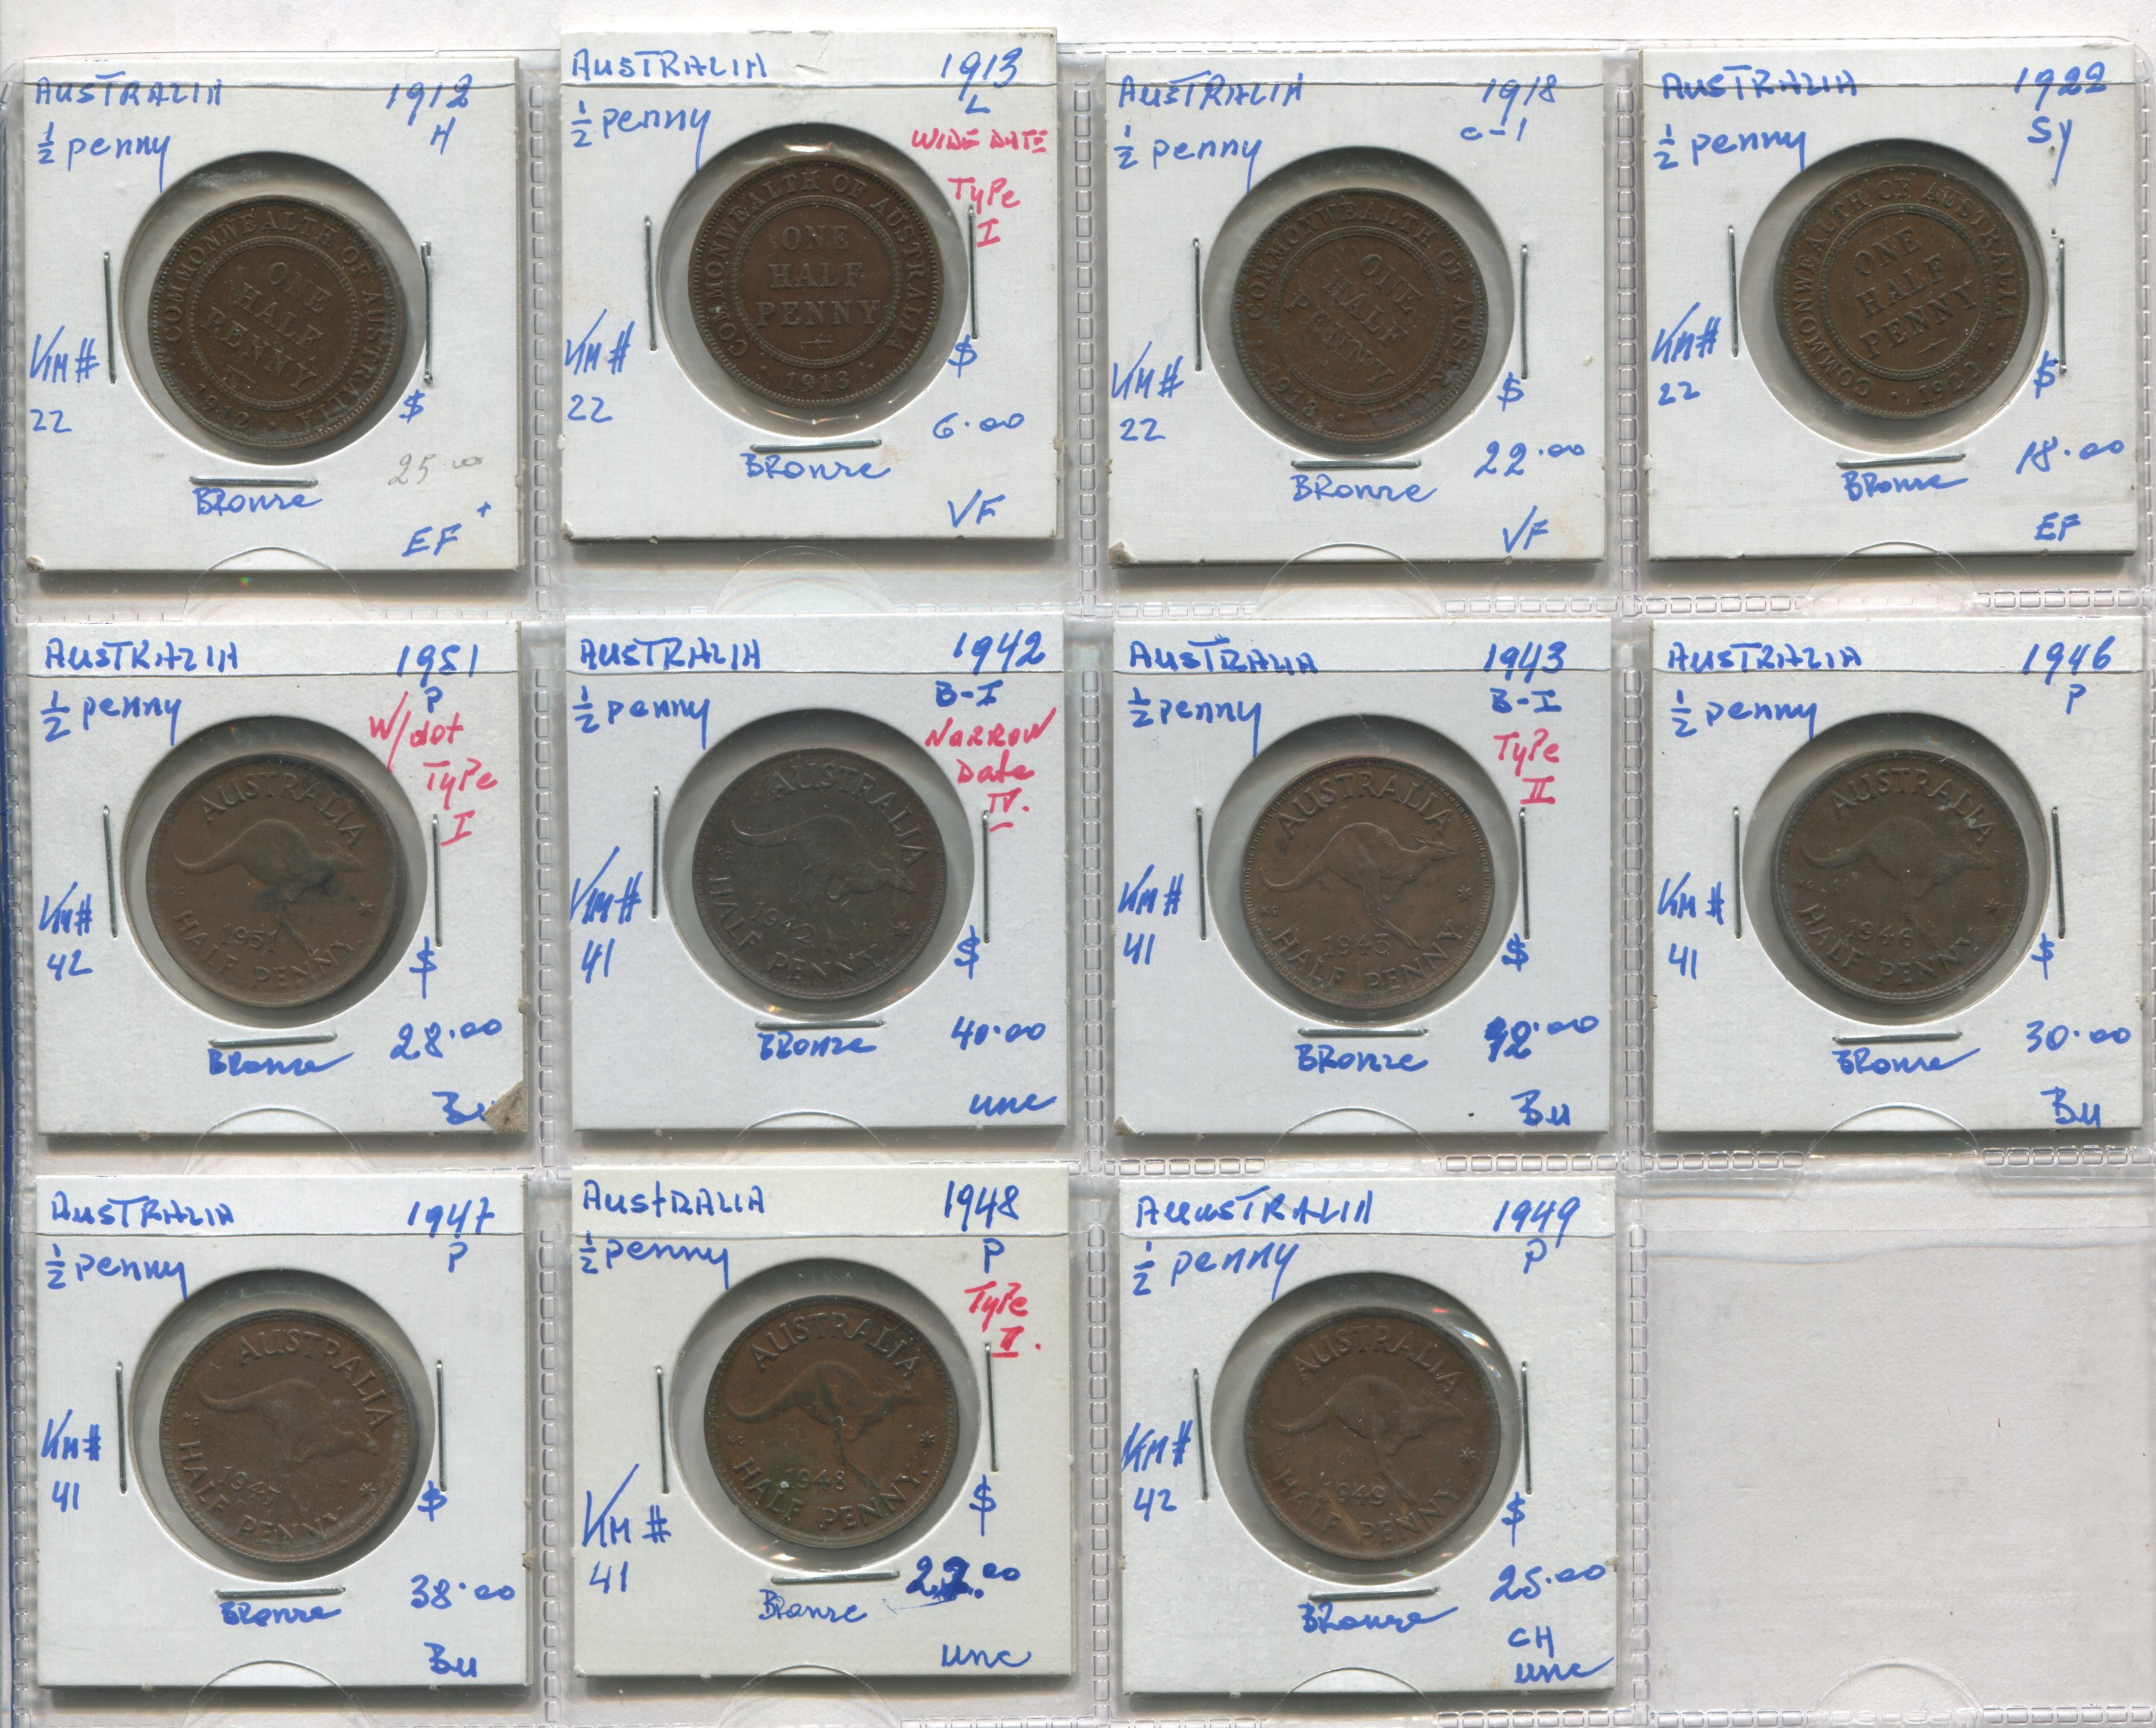 Australia 1912-49 1/2 Penny Coin Collection